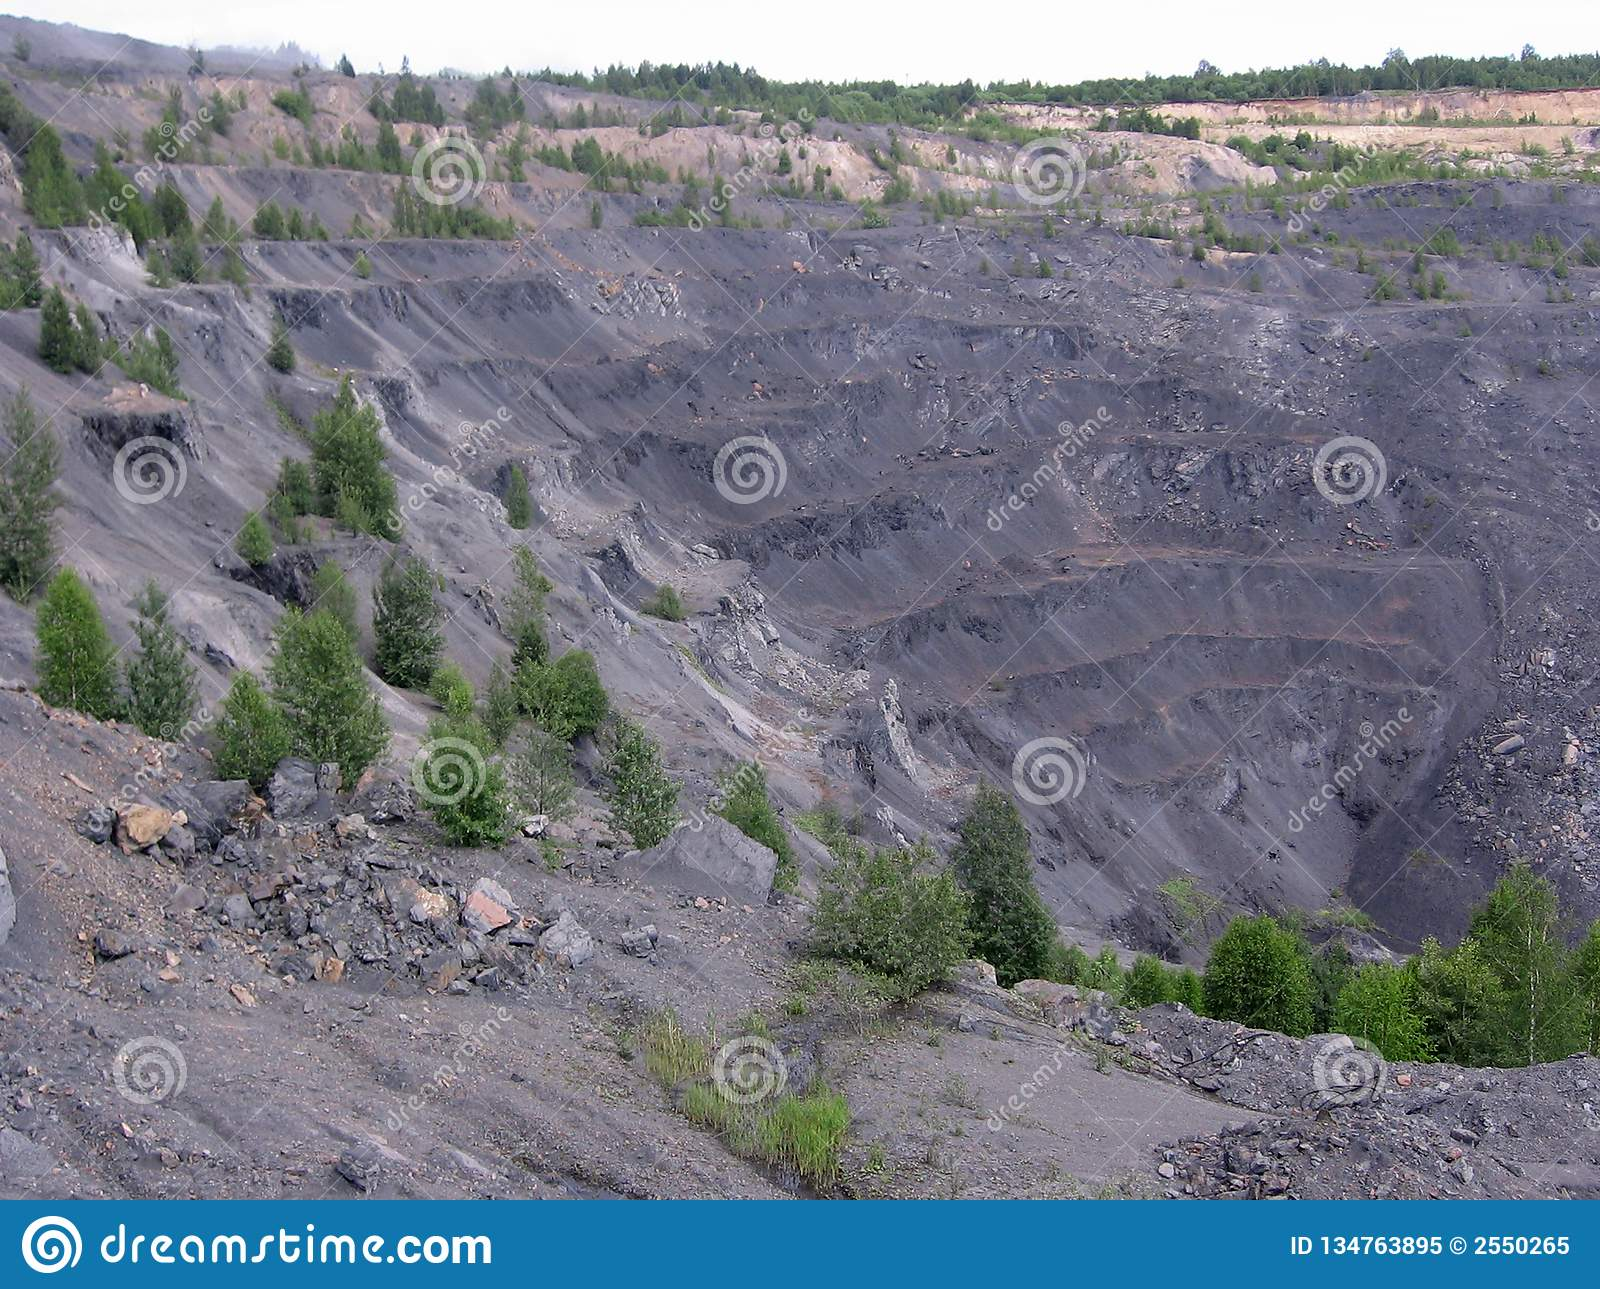 Stone quarry coal mining is carried out geodetic works